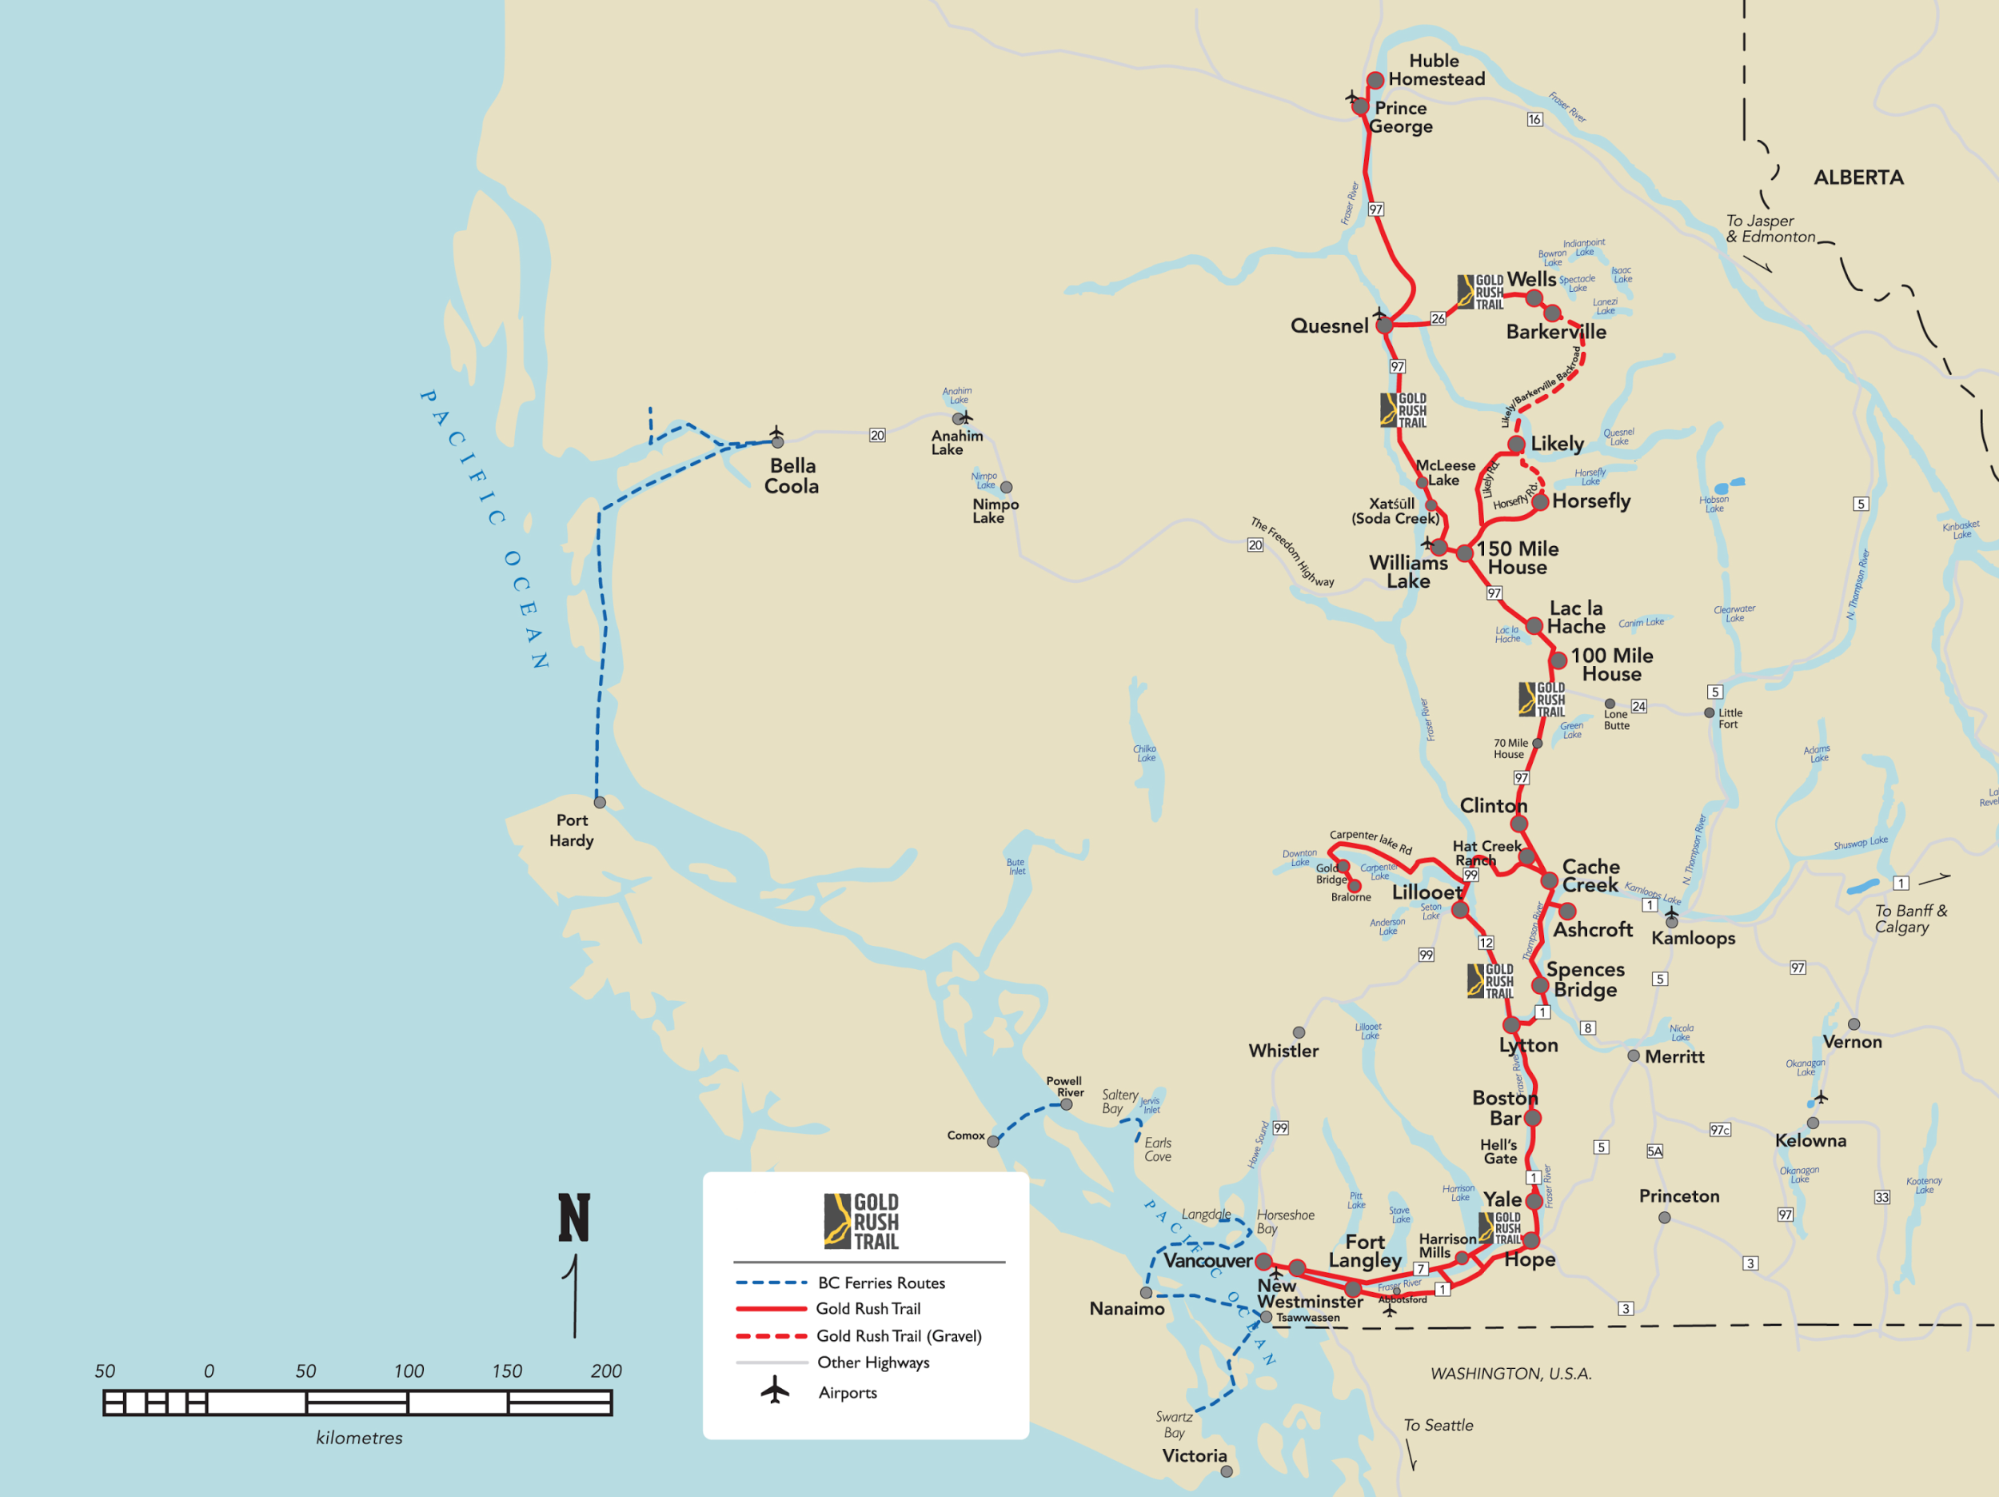 A map with a red line indicating the BC Gold Rush Route.